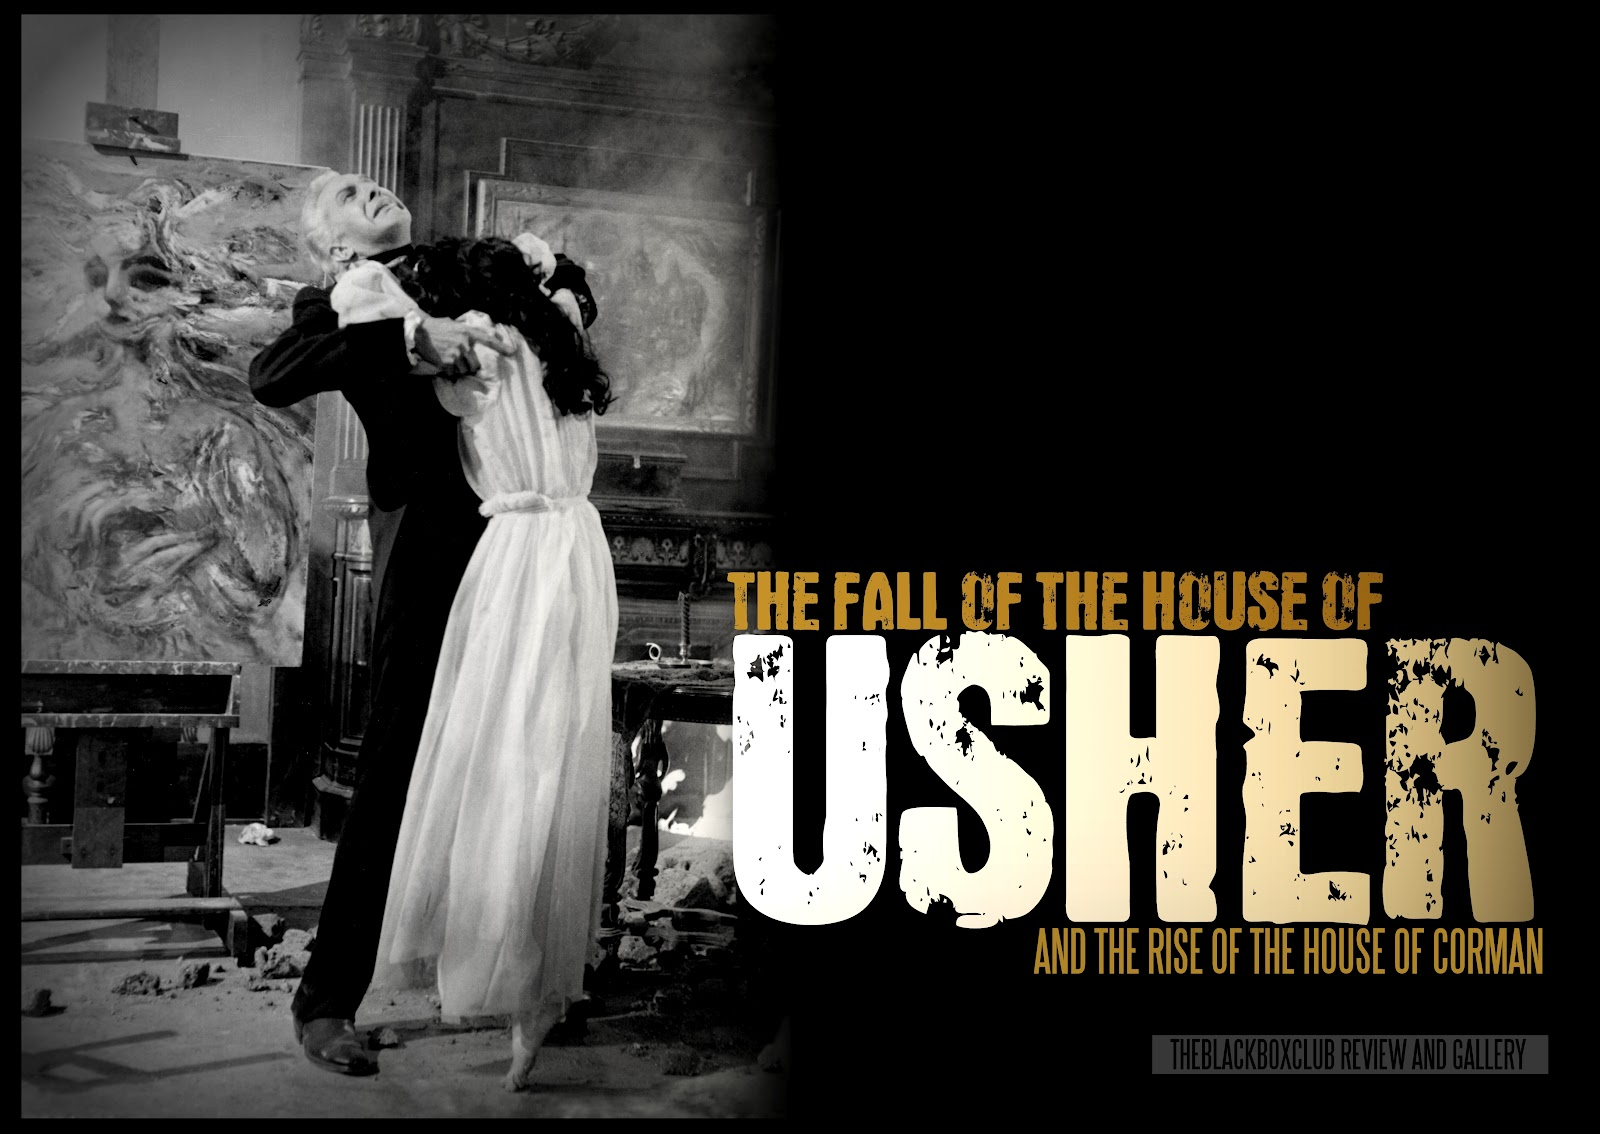 Literature Review: The Fall of the House of Usher